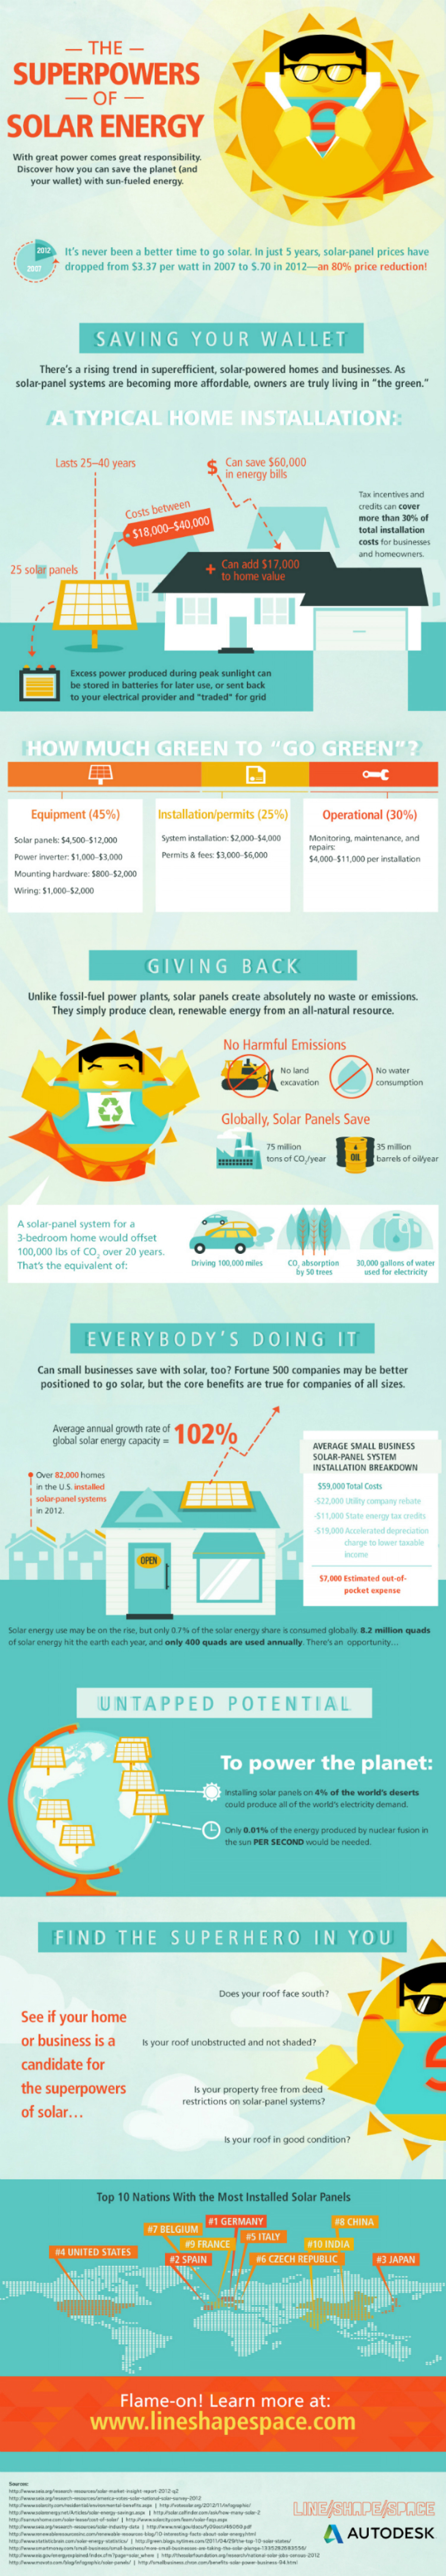 The Superpowers of Solar Energy Infographic